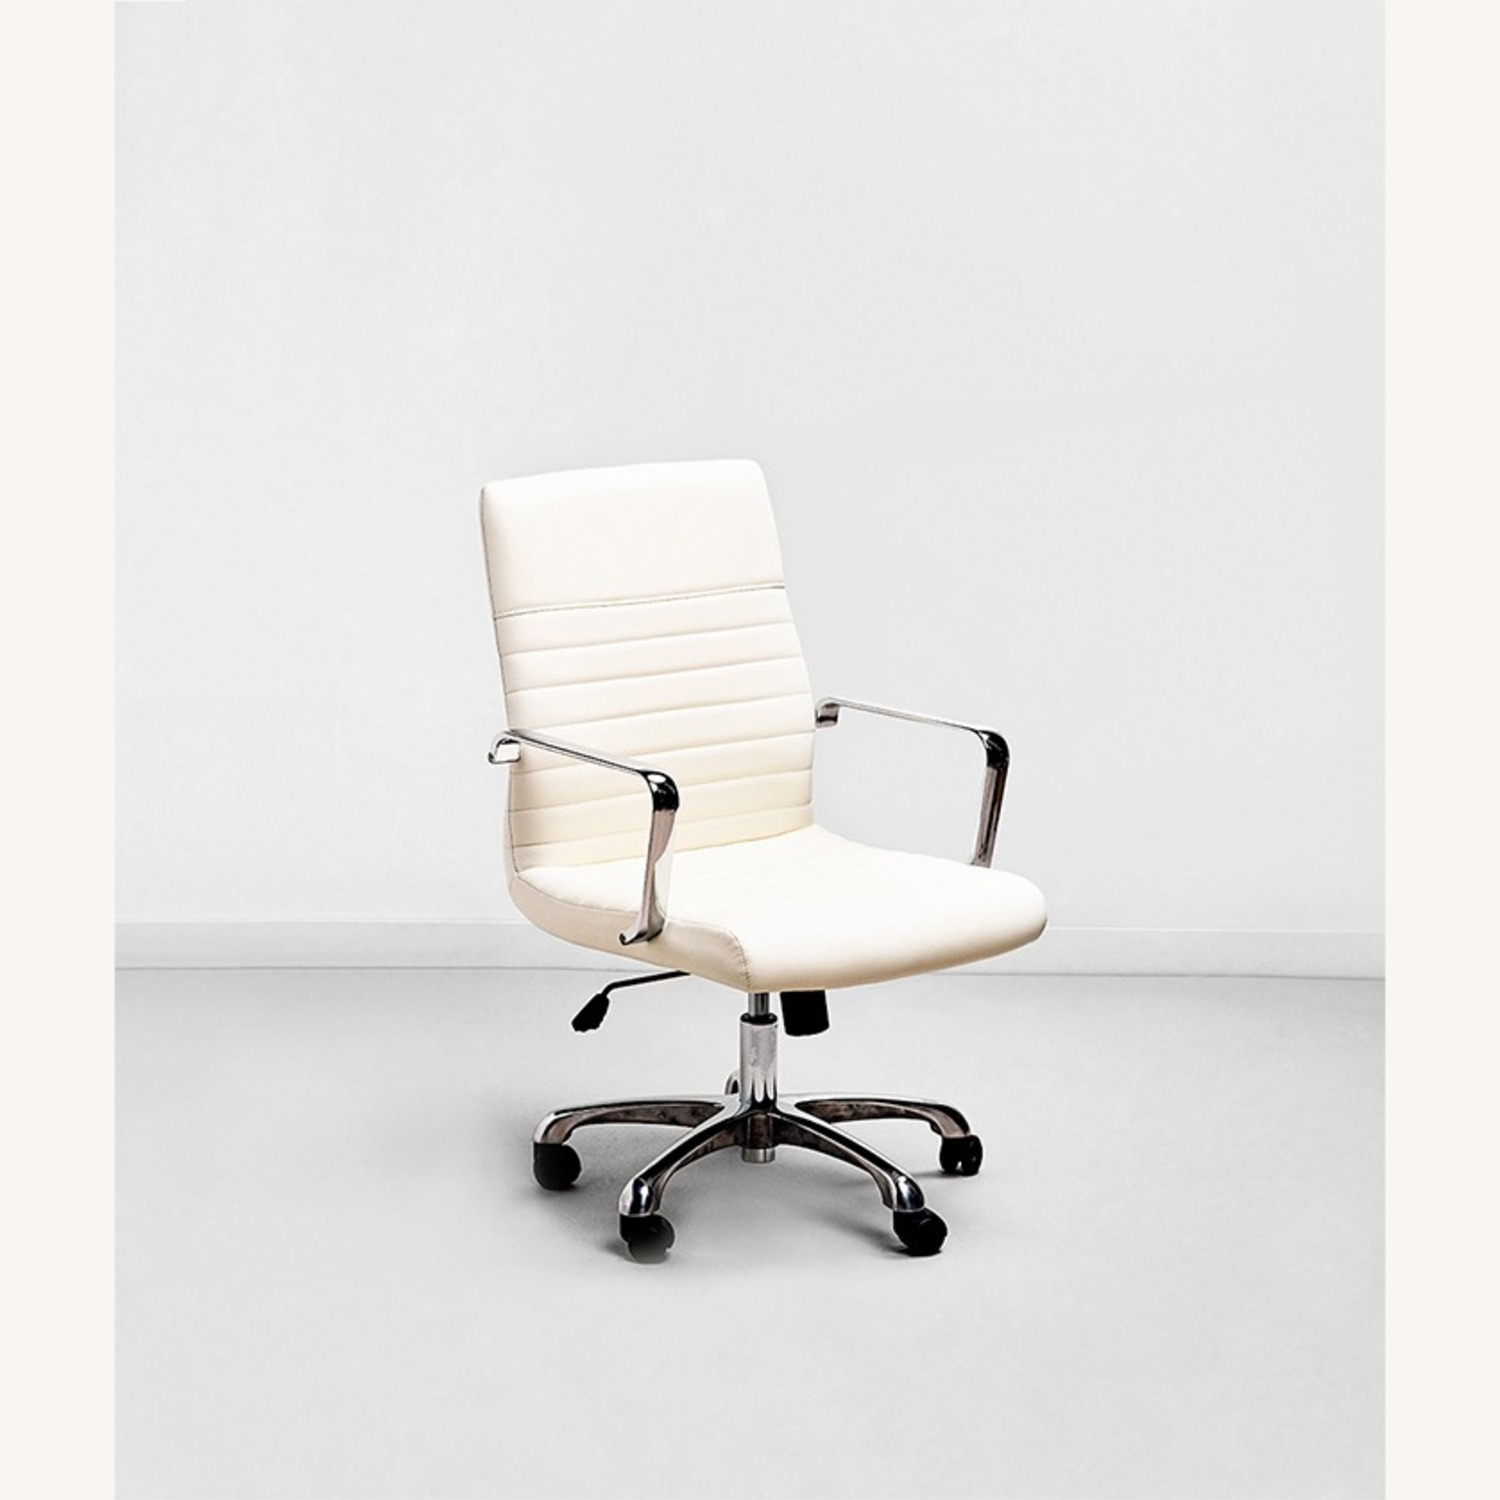 Modway Whimbrel Desk Chair - image-3